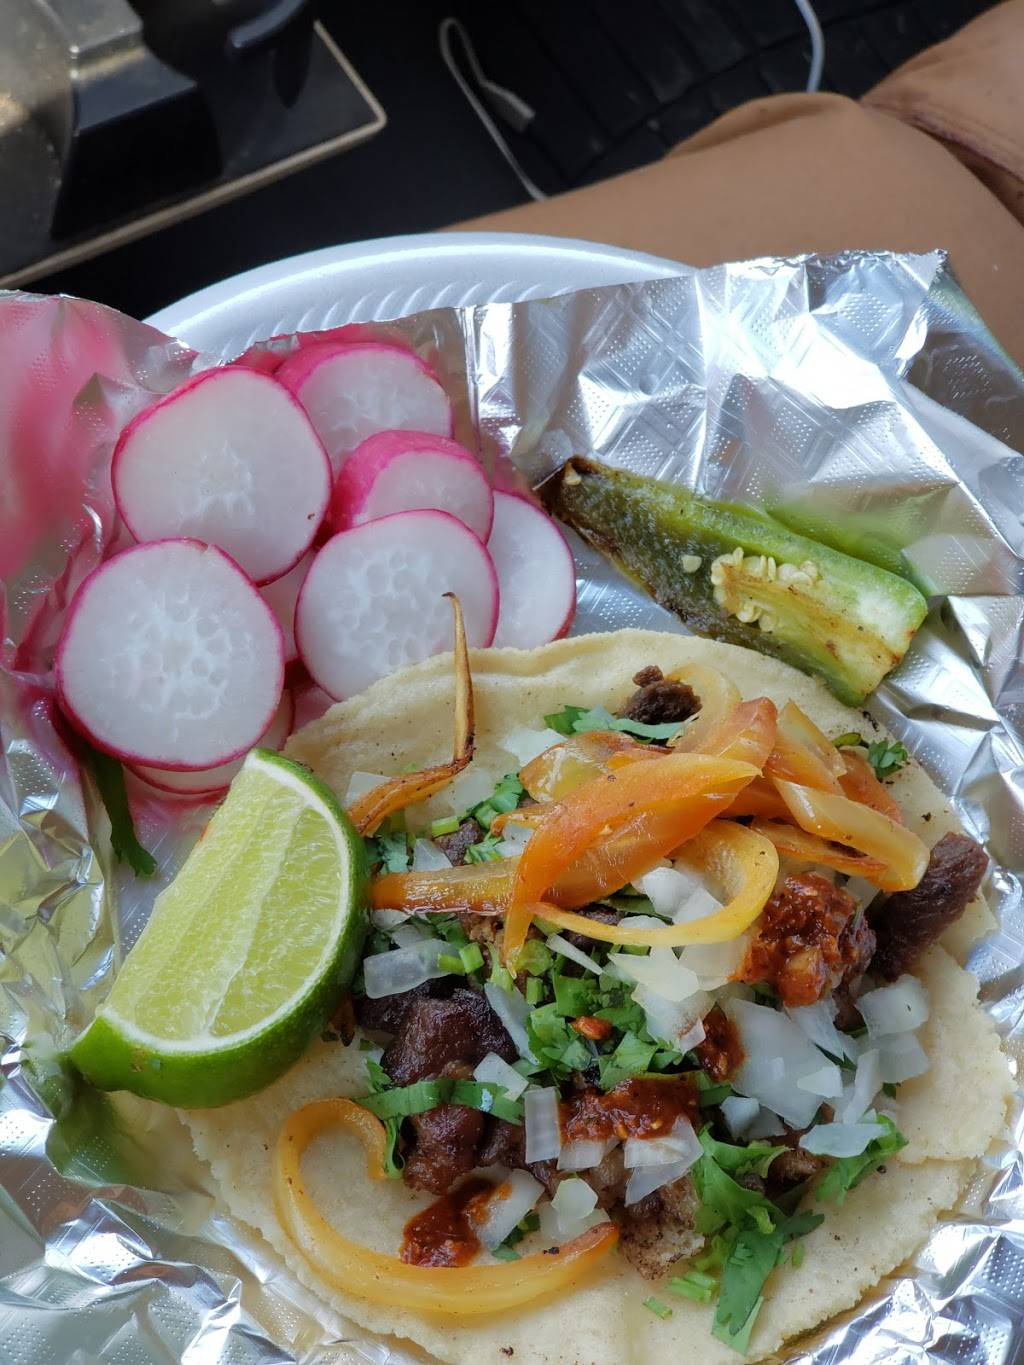 Taqueria platillos la bendicion | restaurant | 1720 Walnut St, Cary, NC 27511, USA | 9194348038 OR +1 919-434-8038